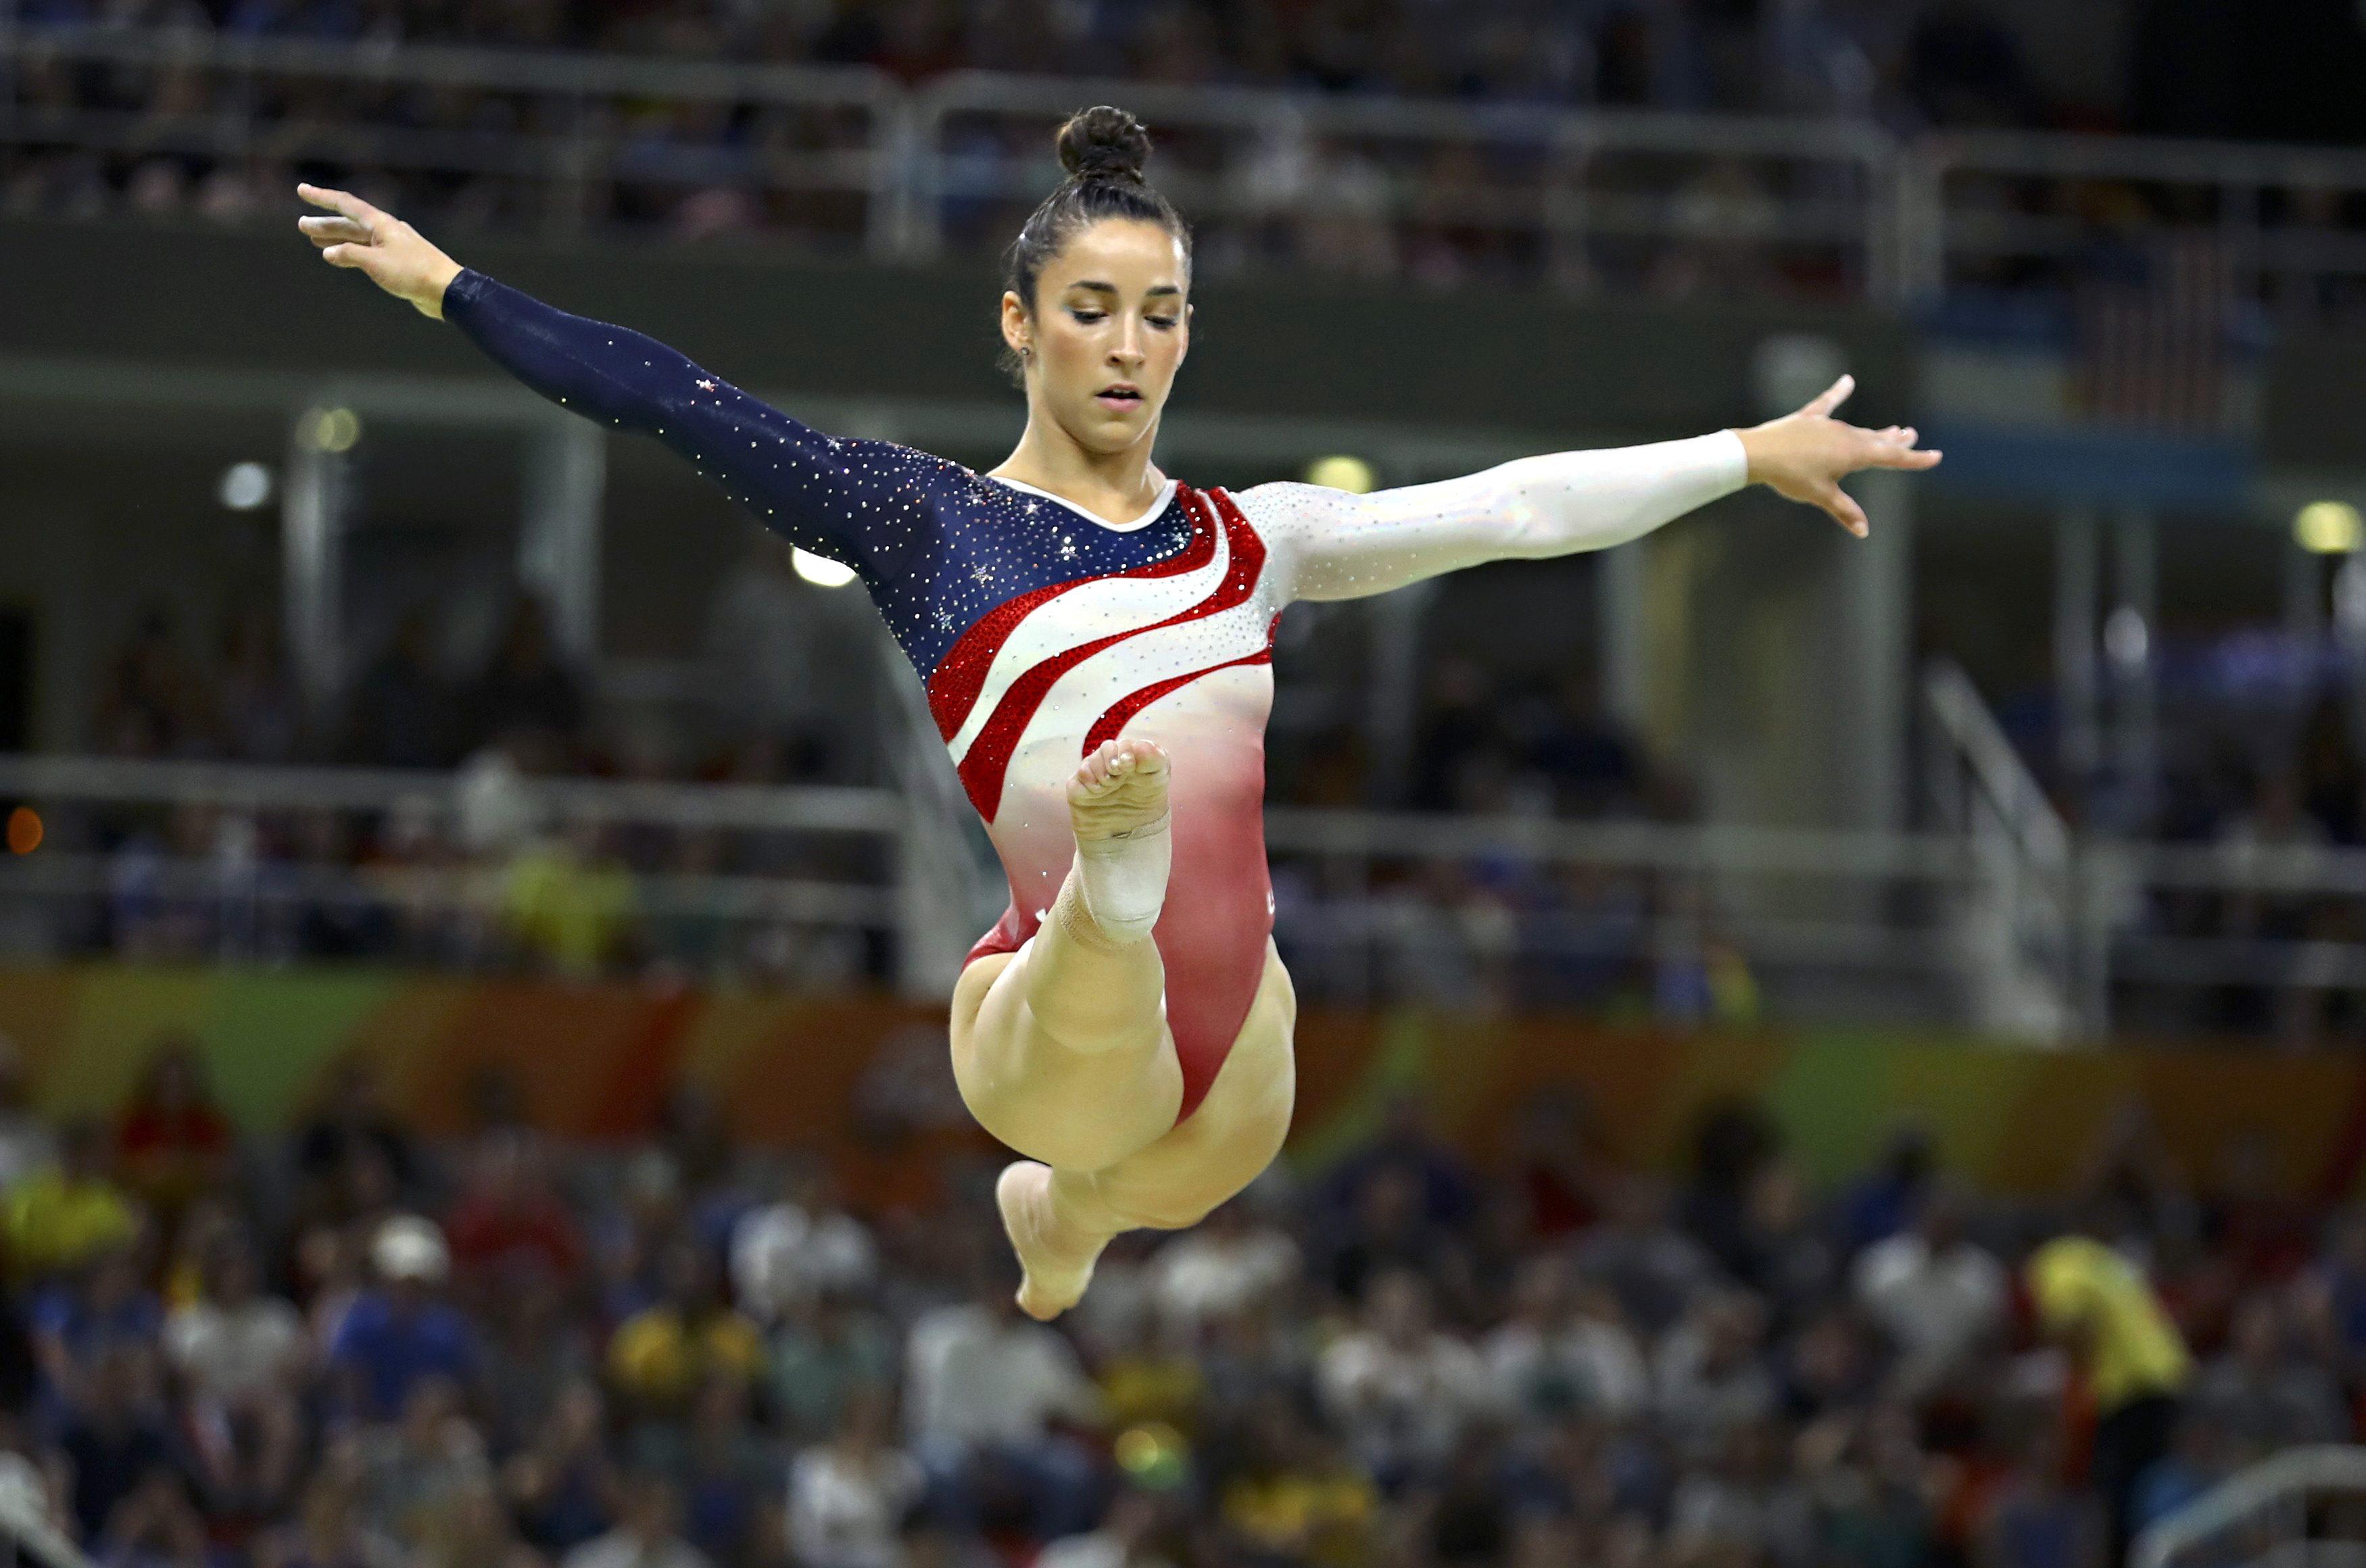 efcc6fc22606 Gymnastics coach fired after contacting Aly Raisman about Larry Nassar